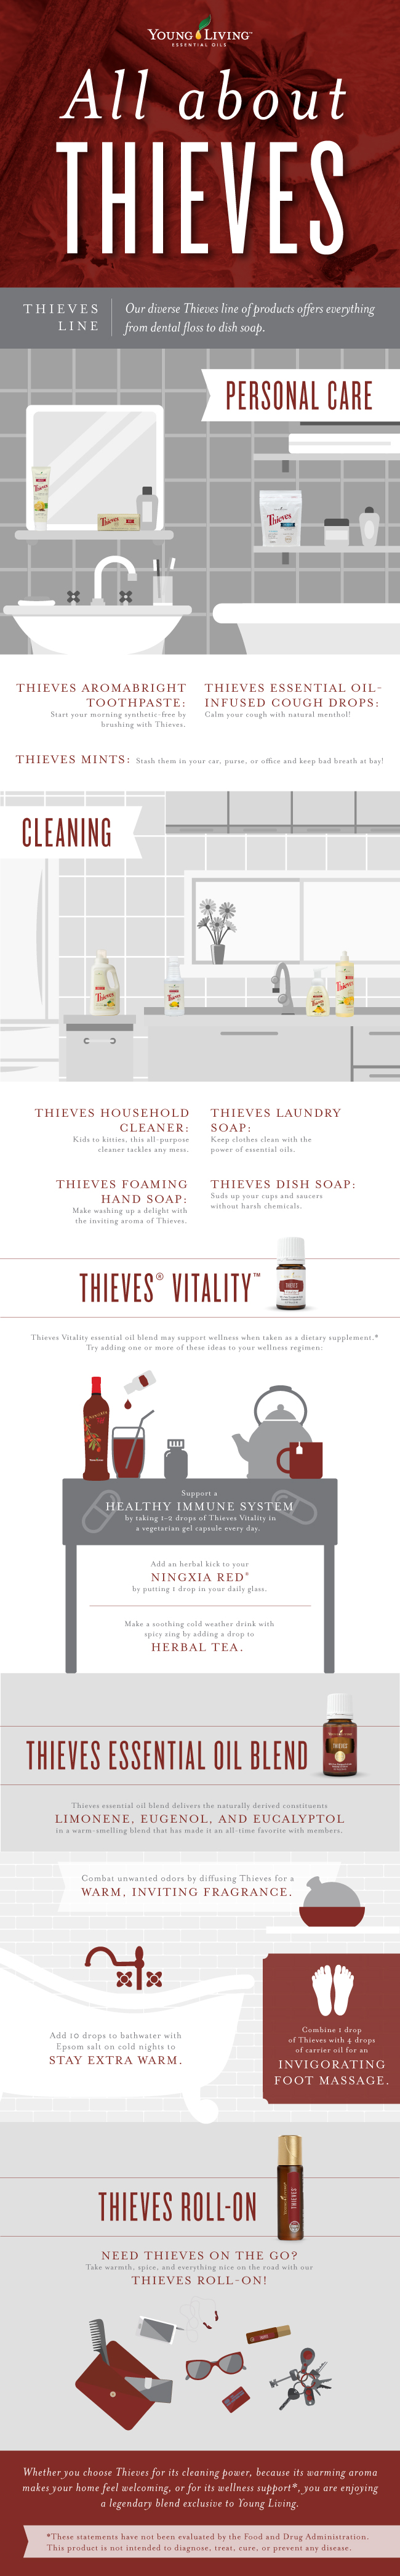 all about thieves